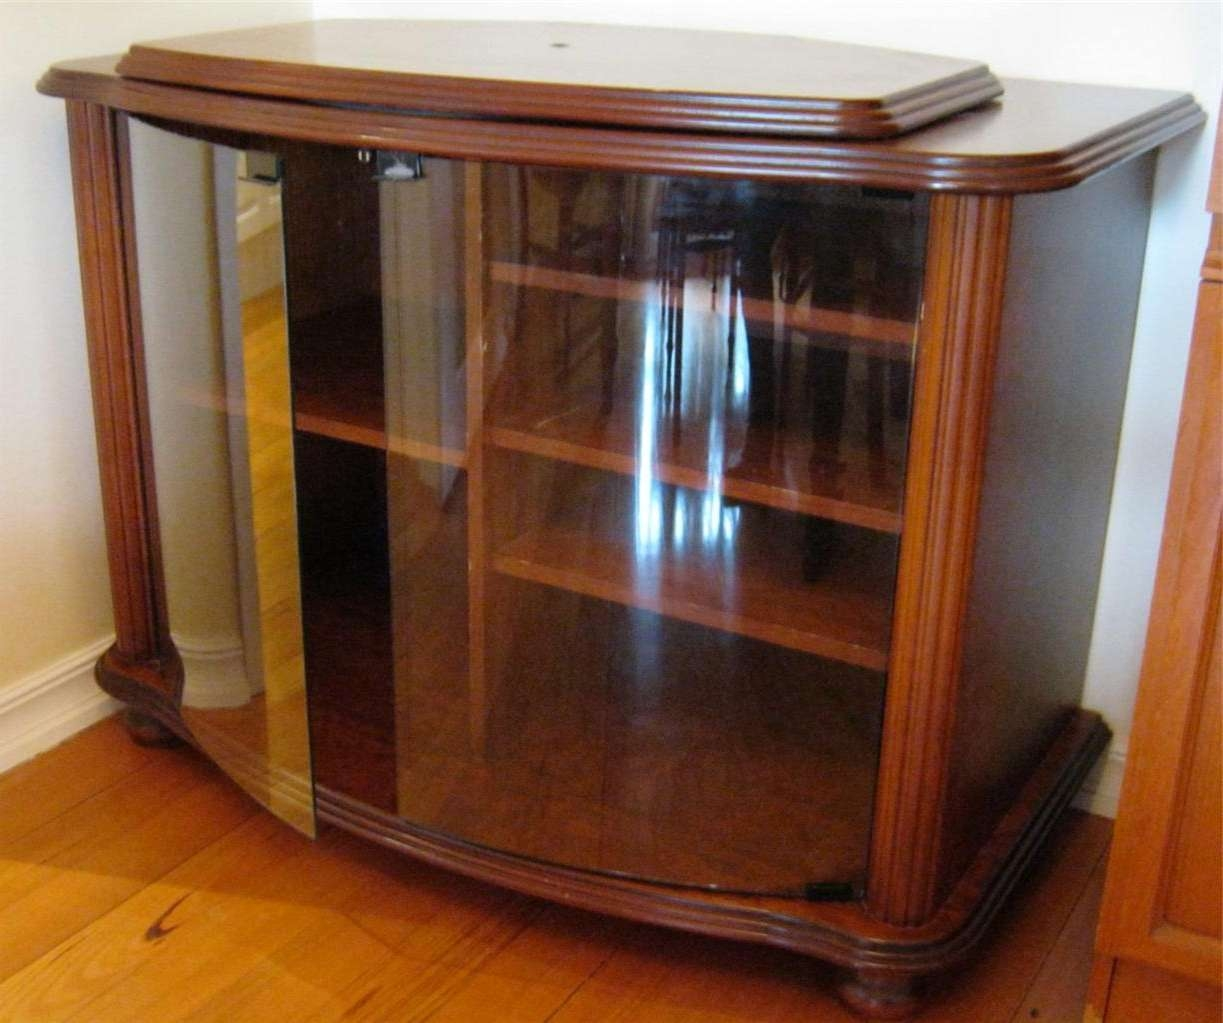 Corner Tv Stand Cabinet With Frameless Glass Doors – Decofurnish In Corner Tv Cabinets With Glass Doors (View 4 of 20)